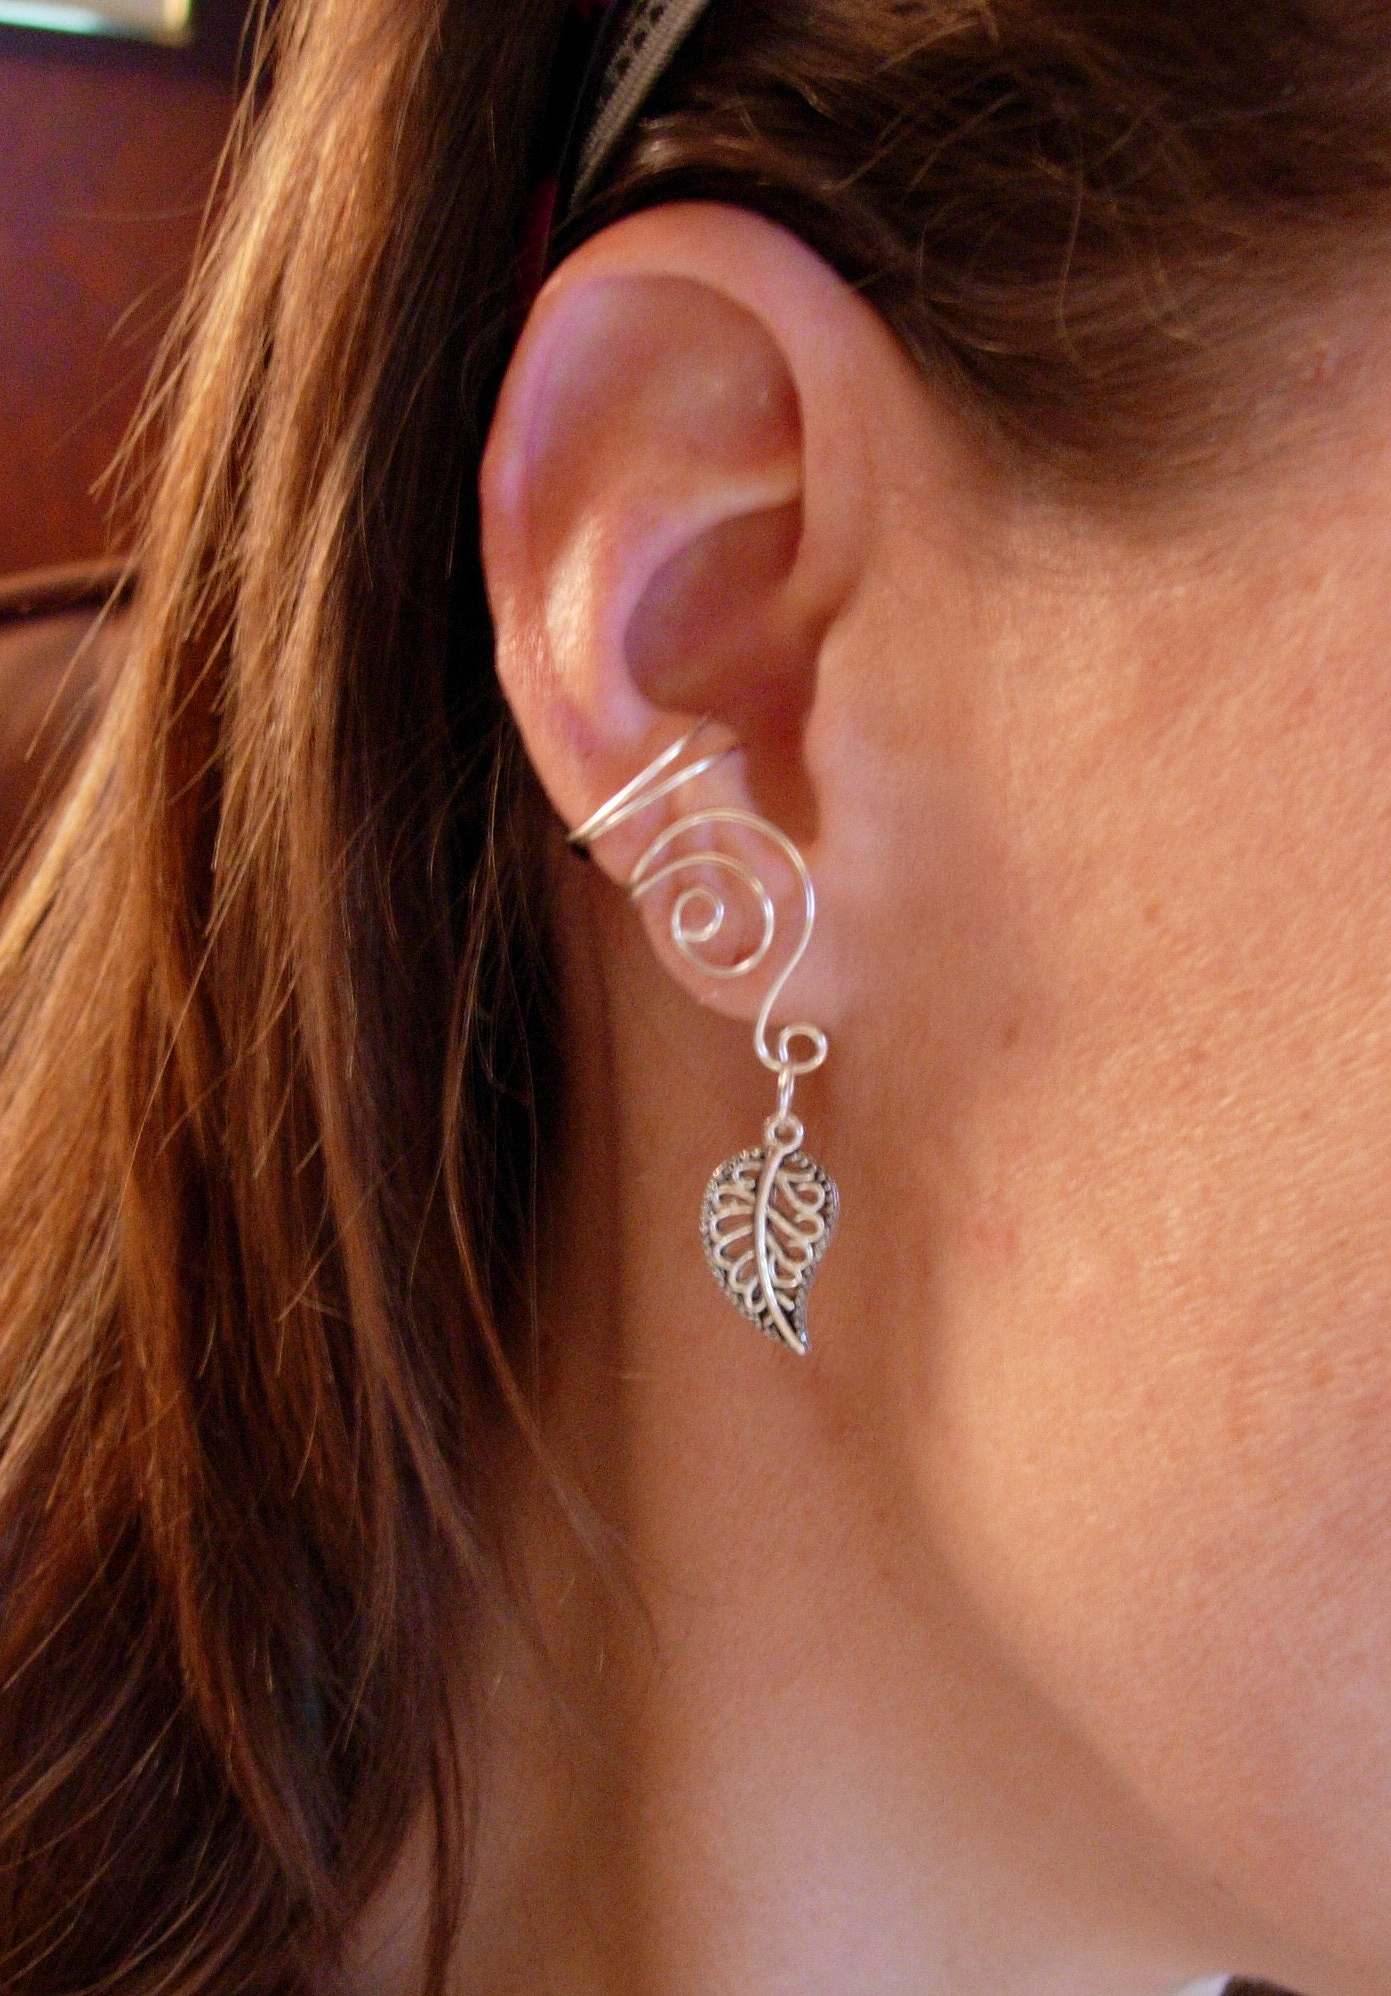 Pair Of Silver Plated Ear Cuffs With Antiqued Silver Leaf